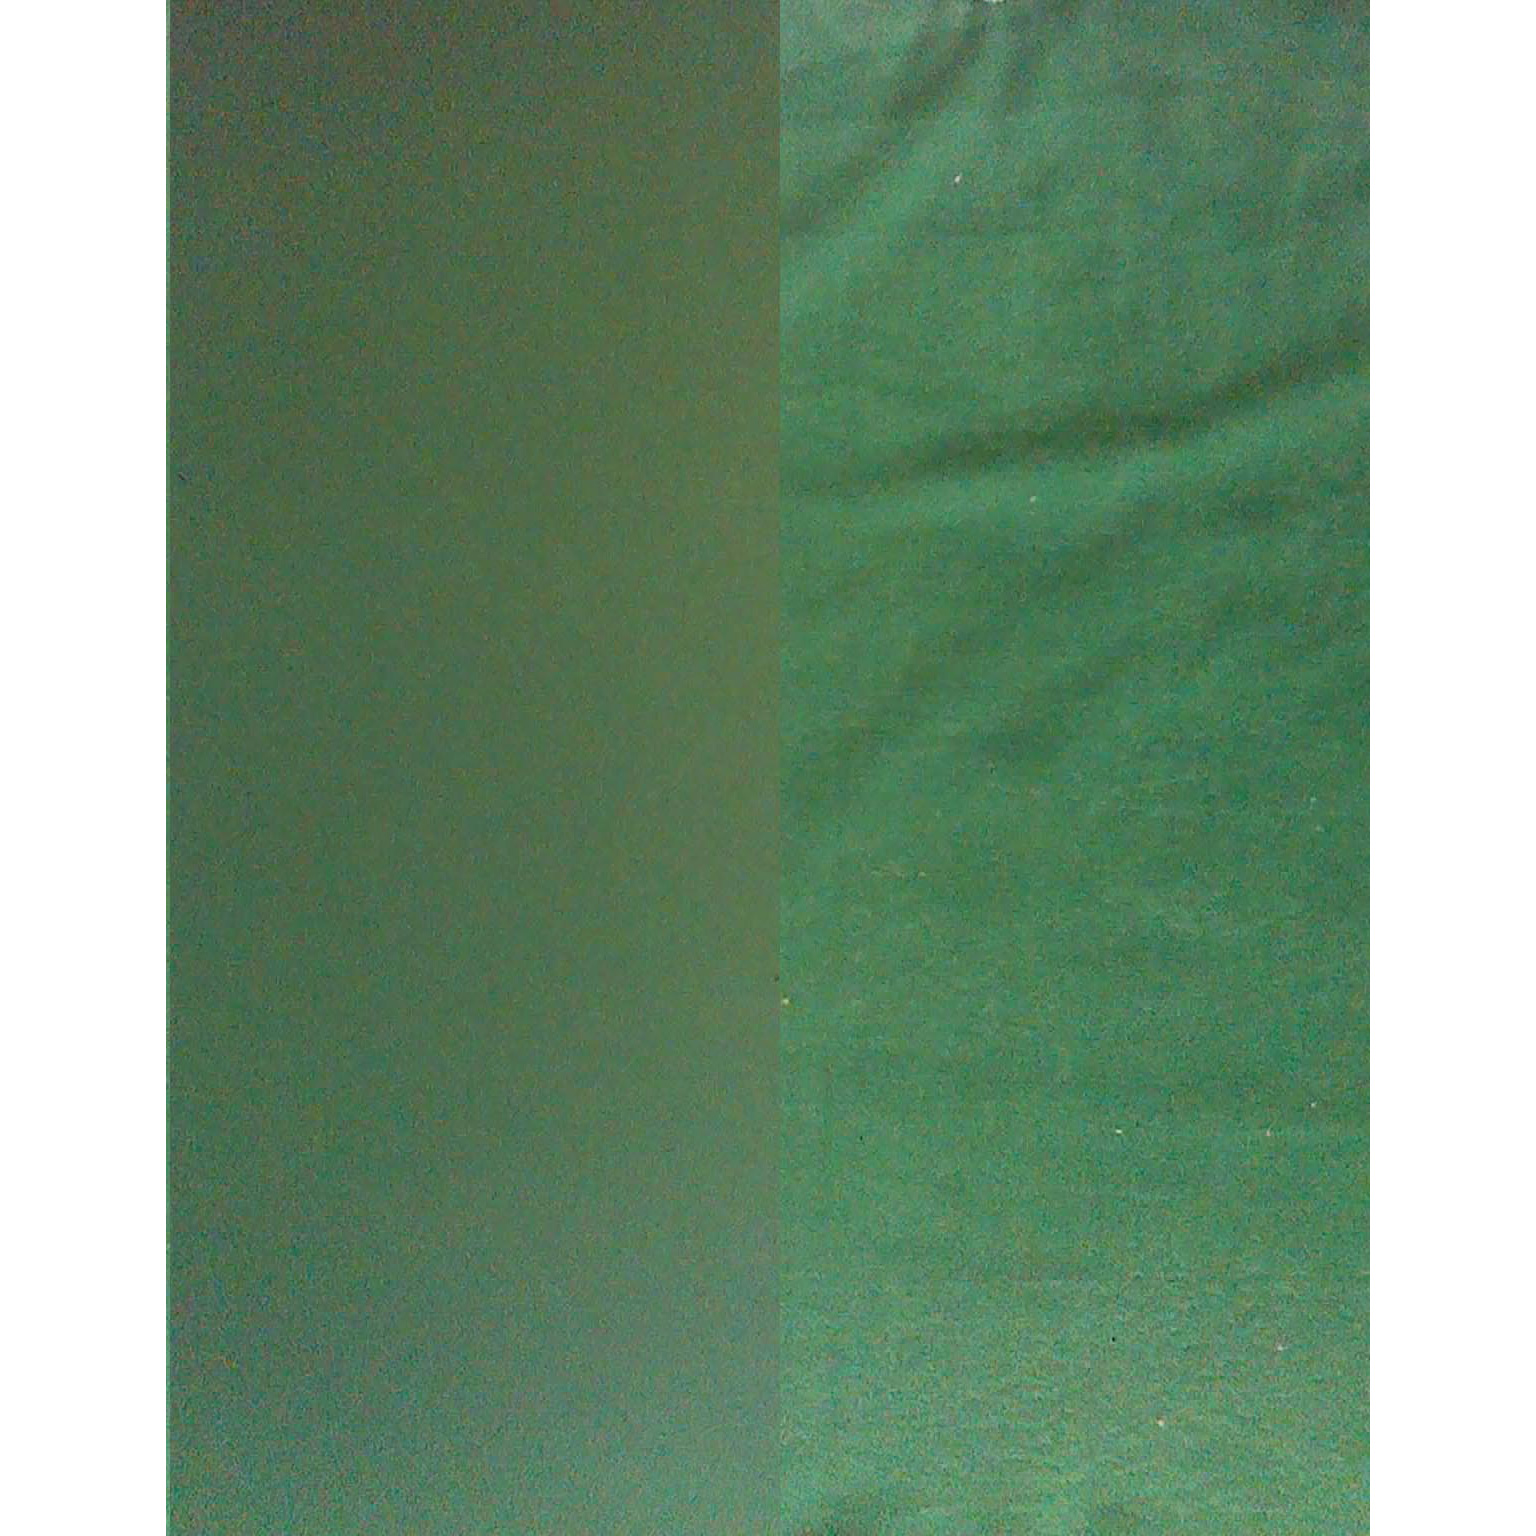 Poker cloth 2 sided solid color